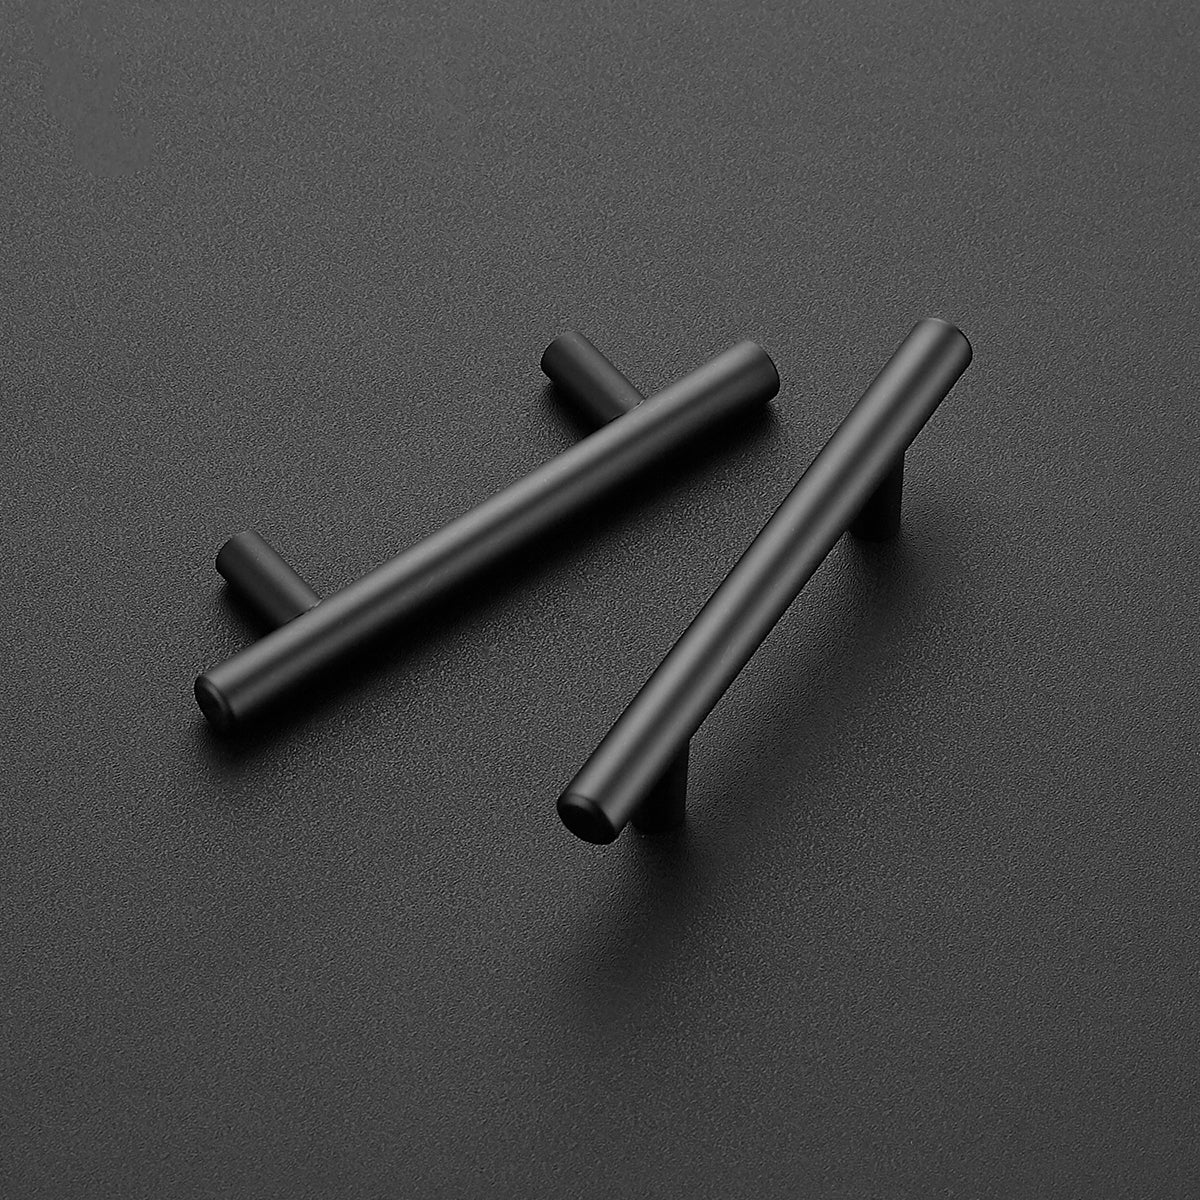 "30 Pack 6 inch Cabinet Pulls Matte Black Stainless Steel Kitchen Drawer Pulls Cupboard Handles Cabinet Handles 3.75"" Hole Center"